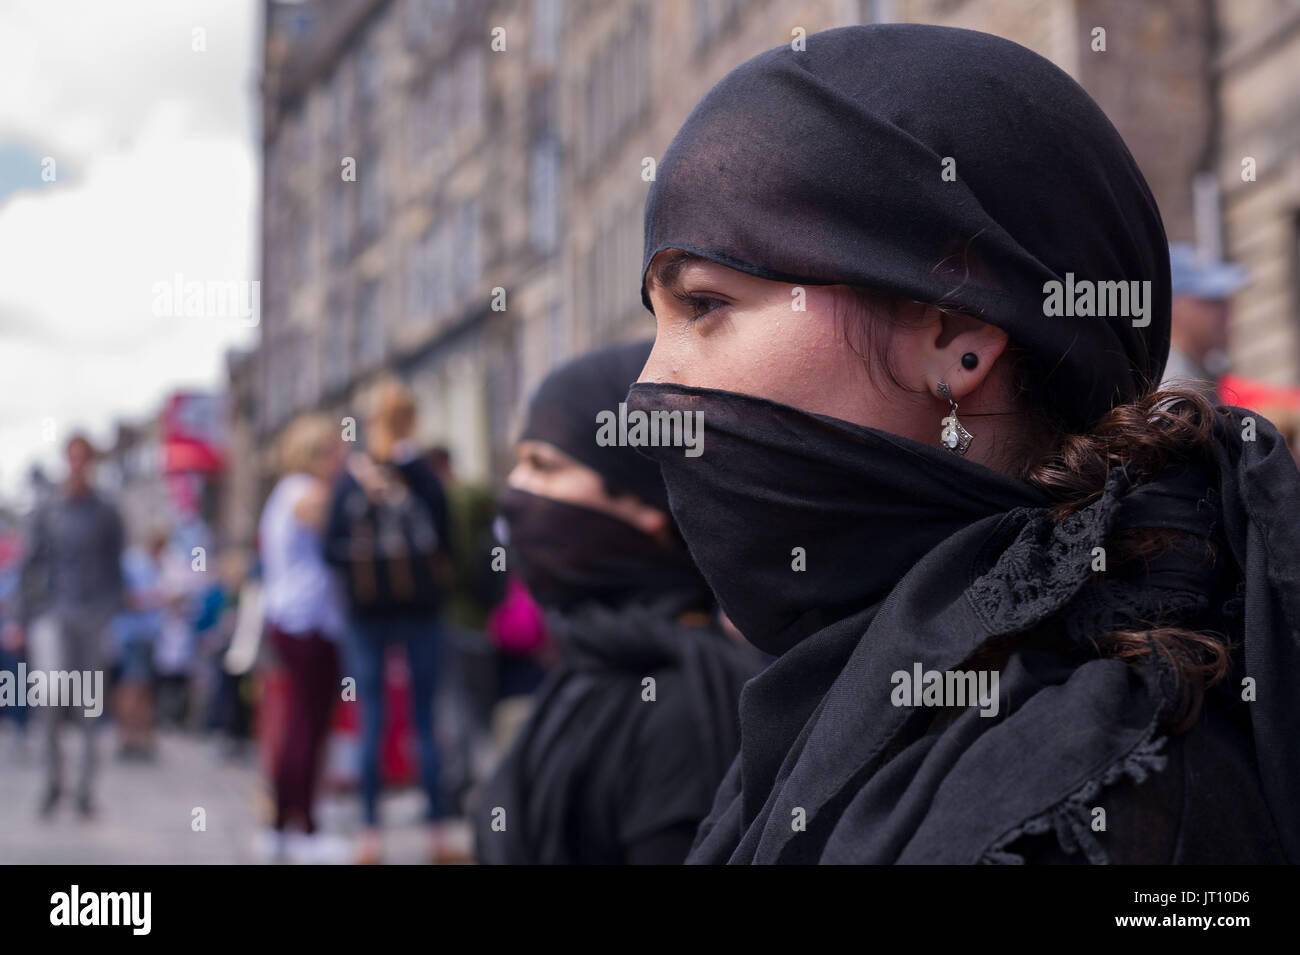 Edinburgh, UK. 07th Aug, 2017. Edinburgh UK Aug 07 2017; Performers on the Royal Mile promote their Edinburgh Festival Fringe show, Deadly Dialogues. Credit: Steven Scott Taylor/Alamy Live News - Stock Image